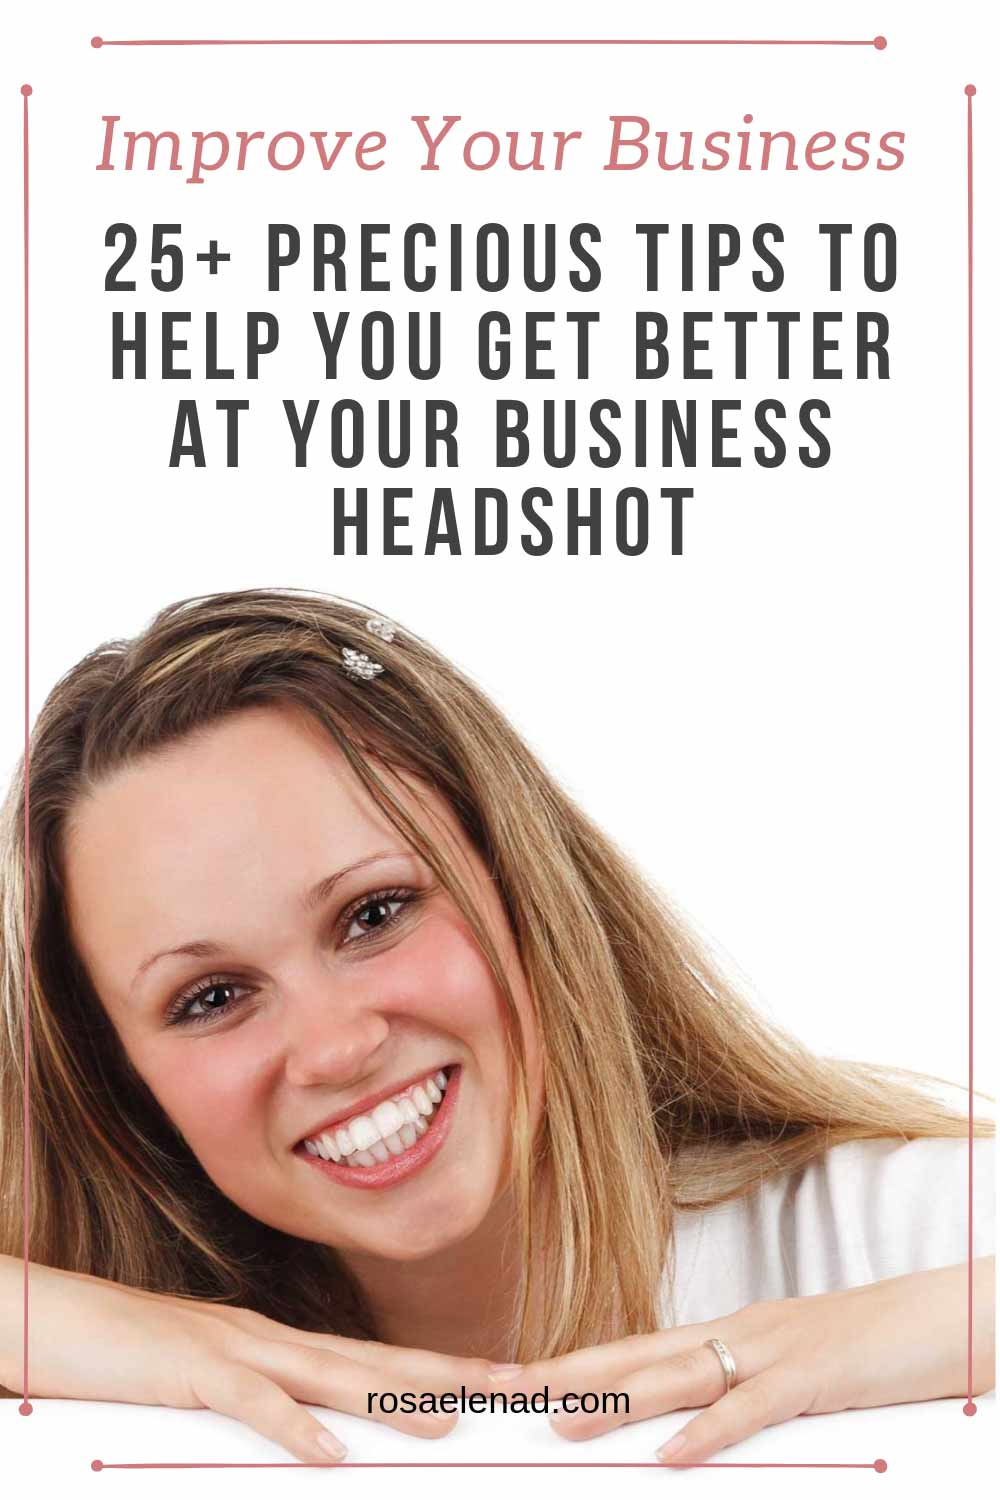 25+ precious tips to help you get better at your business headshot